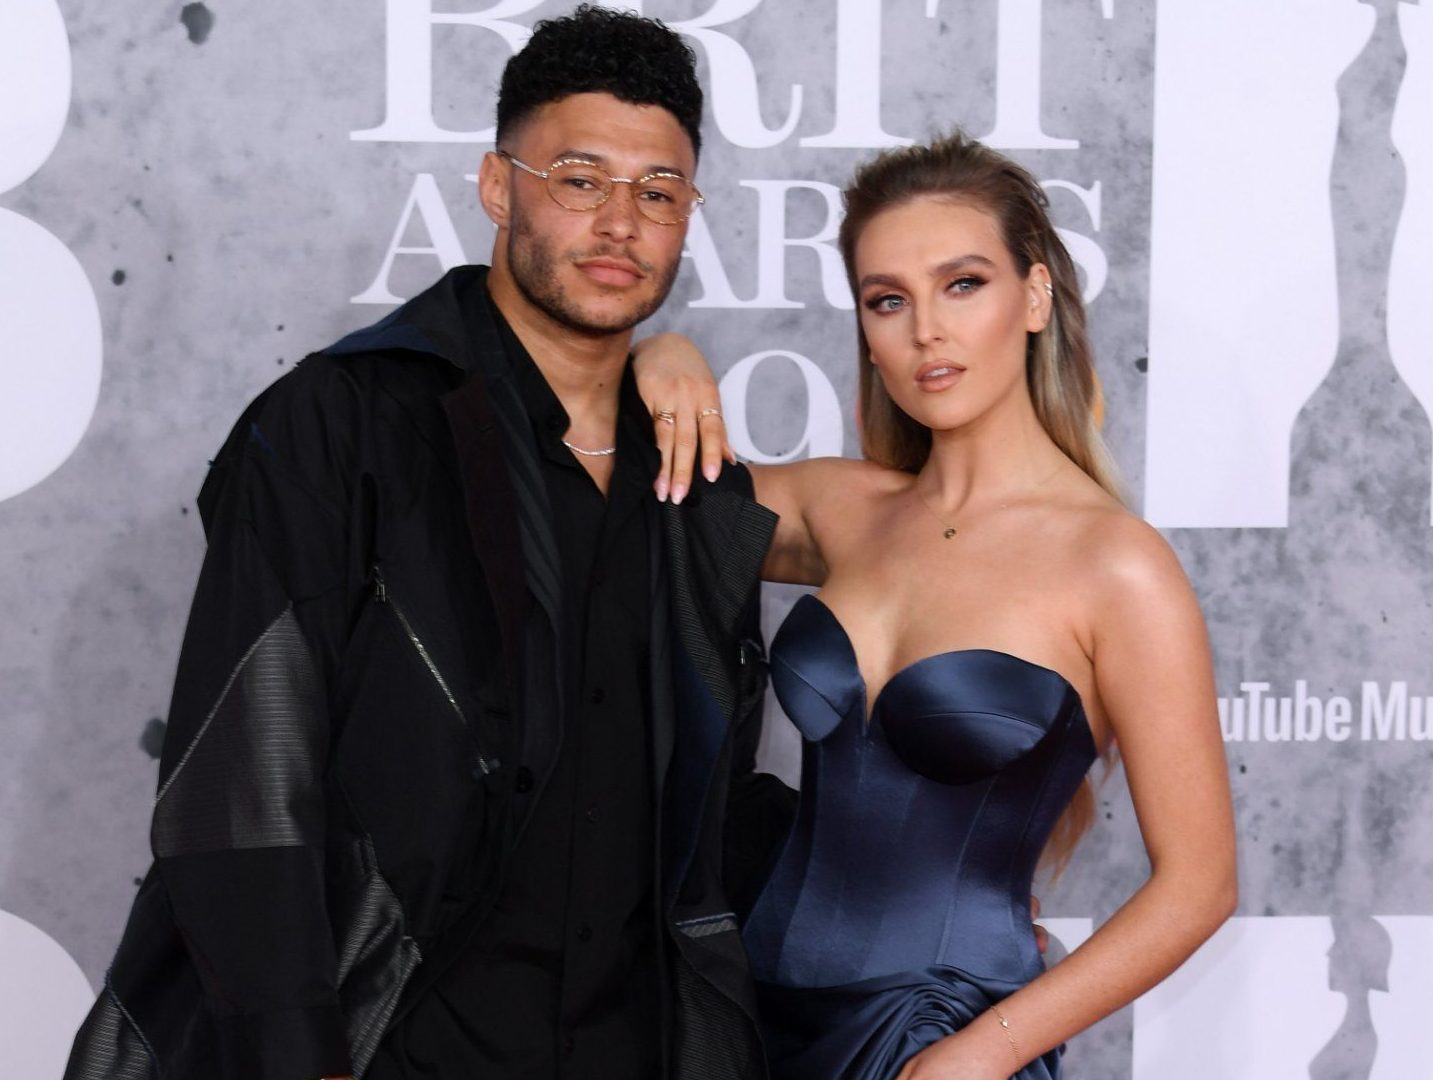 Mandatory Credit: Photo by David Fisher/REX (10110752eg) Alex Oxlade-Chamberlain and Perrie Edwards 39th Brit Awards, Arrivals, The O2 Arena, London, UK - 20 Feb 2019